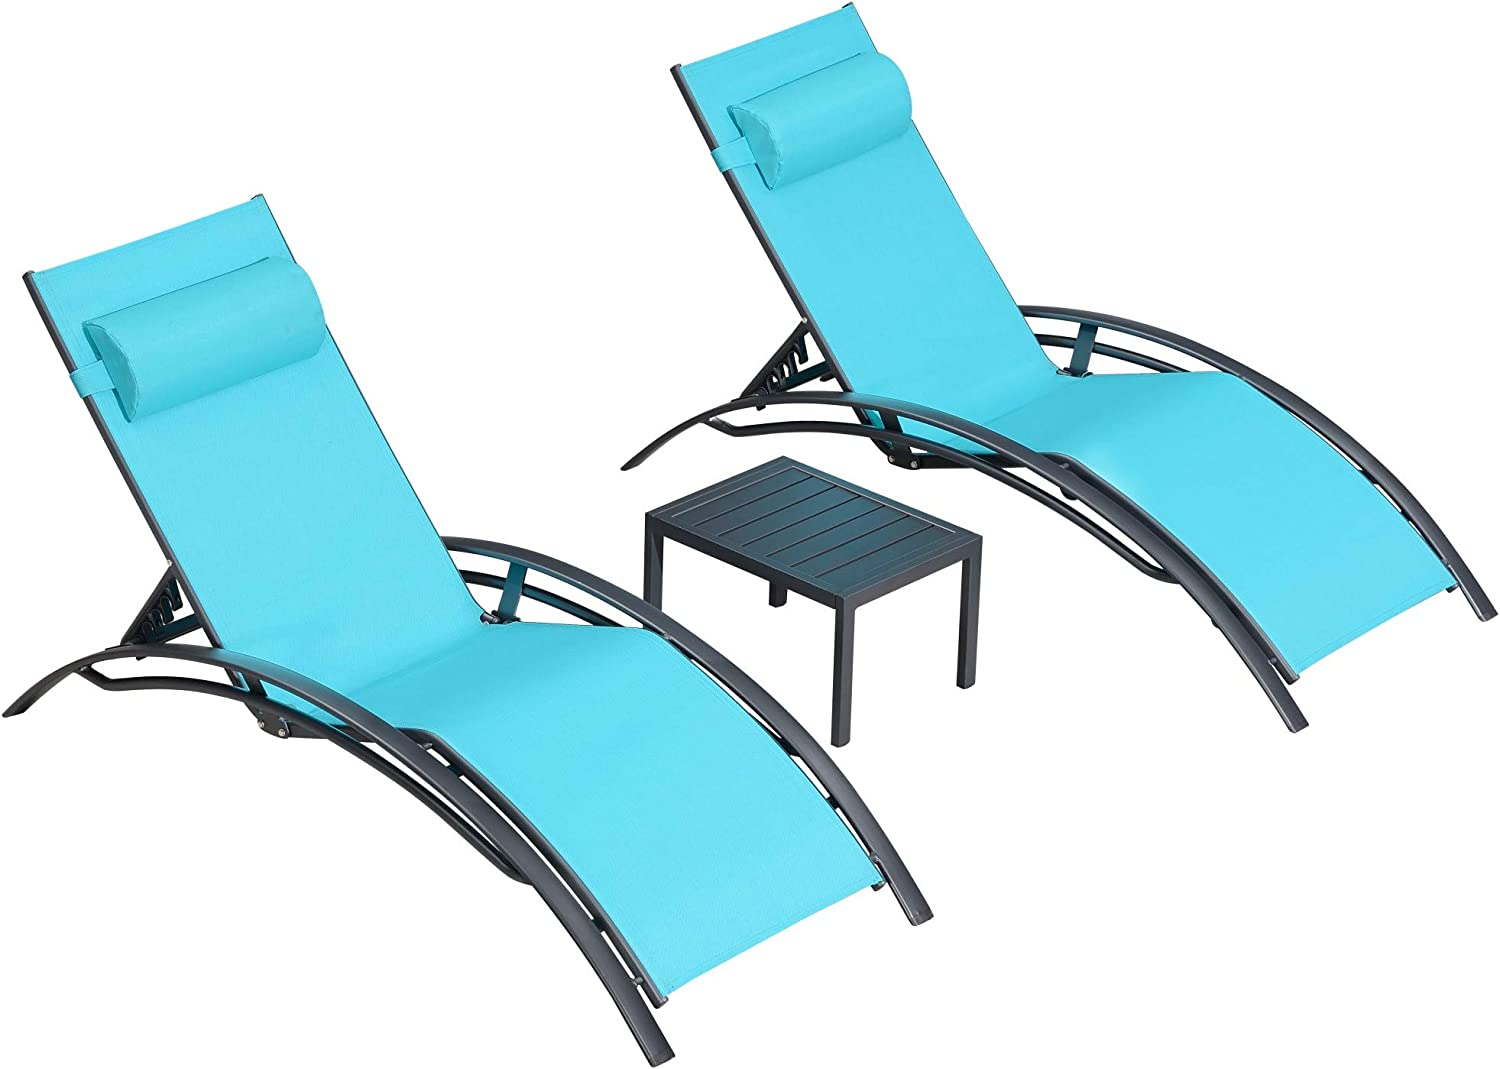 PURPLE LEAF Patio Chaise Lounge Sets 3 Pieces Outdoor Lounge Chair Sunbathing Chair with Headrest and Table for All Weather, Turquoise Blue